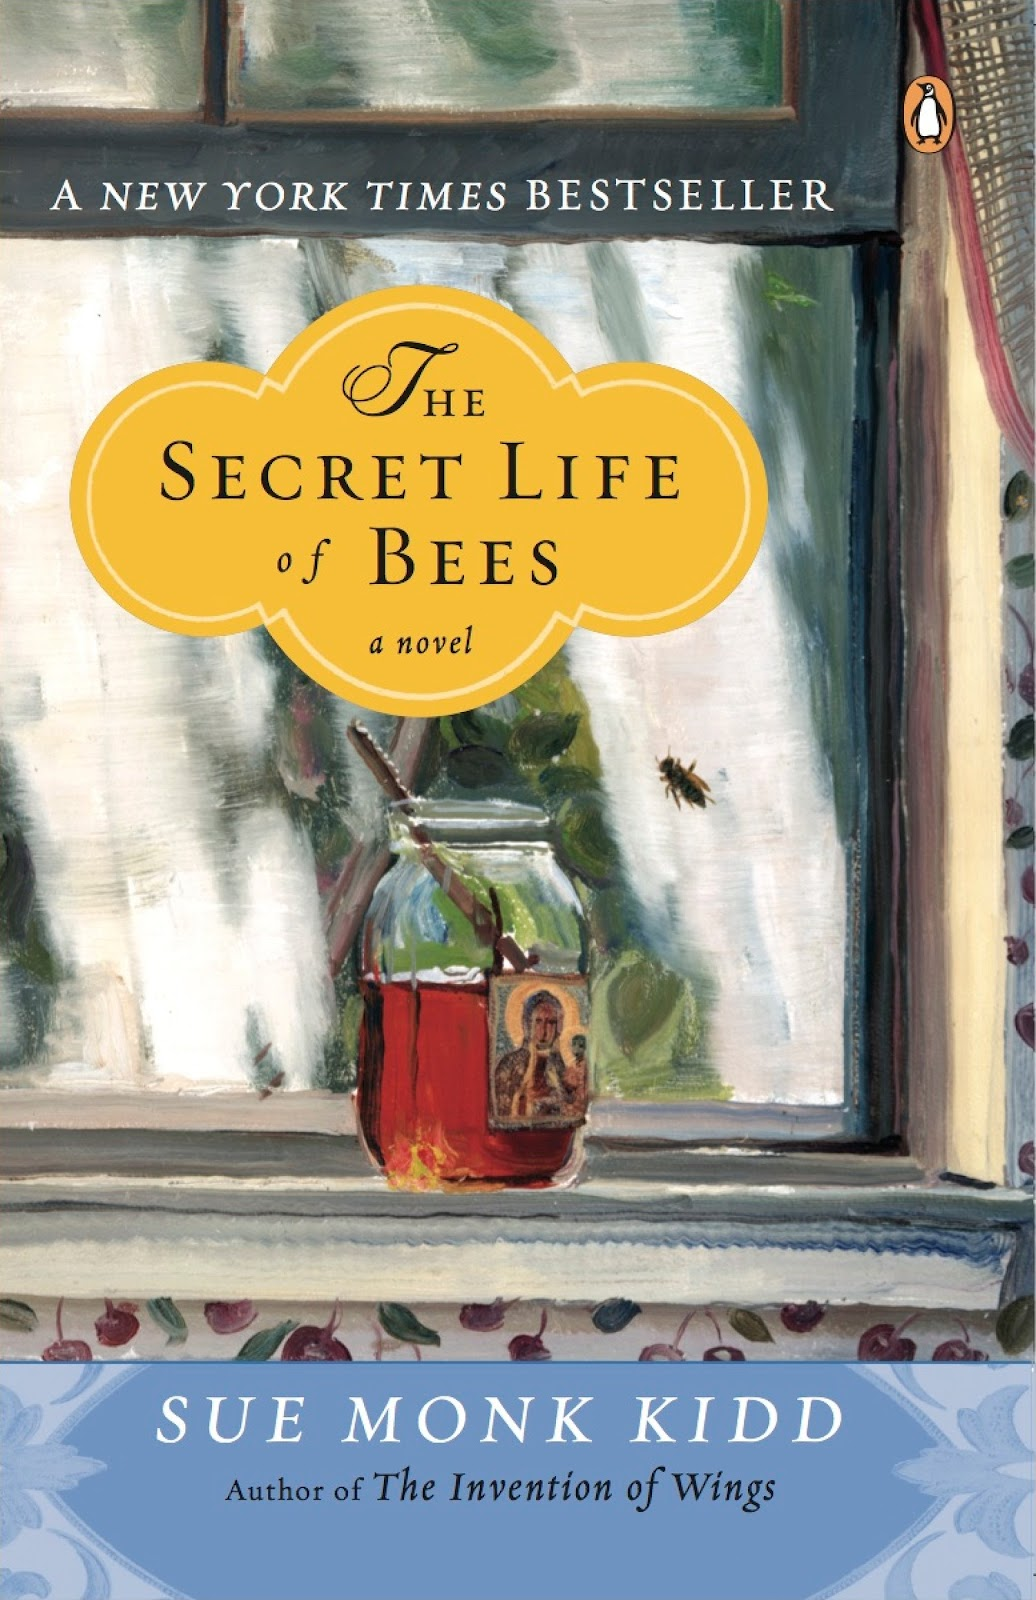 Image result for the secret life of bees by sue monk kidd